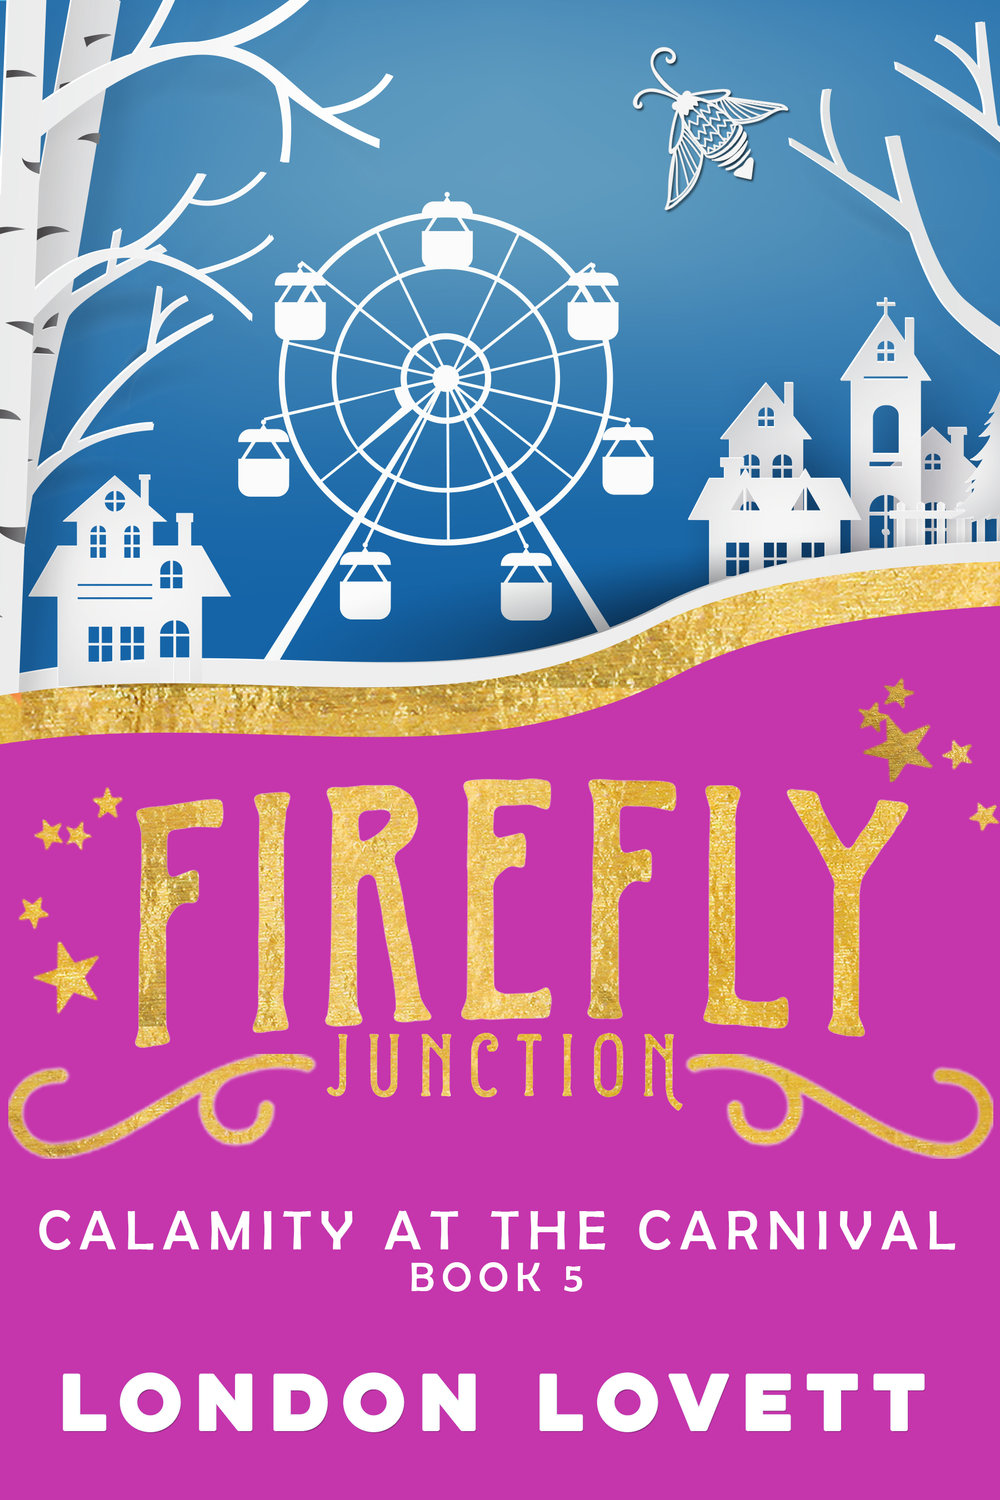 Calamity at the Carnival - Spring is in the air. Flowers are blooming, birds are singing, Jackson's kisses keep coming, and despite the occasional moodiness of her ghostly housemate, Sunni is looking forward to the season.It's spring break in Firefly Junction and the Stockton Traveling Carnival has come to town. Sunni finds herself saddled with an uninspiring story assignment. But in between the mix of sugary carnival treats, scream-inducing rides and timeless arcade games, someone murders Madame Cherise, the fortune teller, and Sunni's assignment takes a wild turn.Coming April 8, 2019Pre-order on: Amazon iBooks Nook Kobo